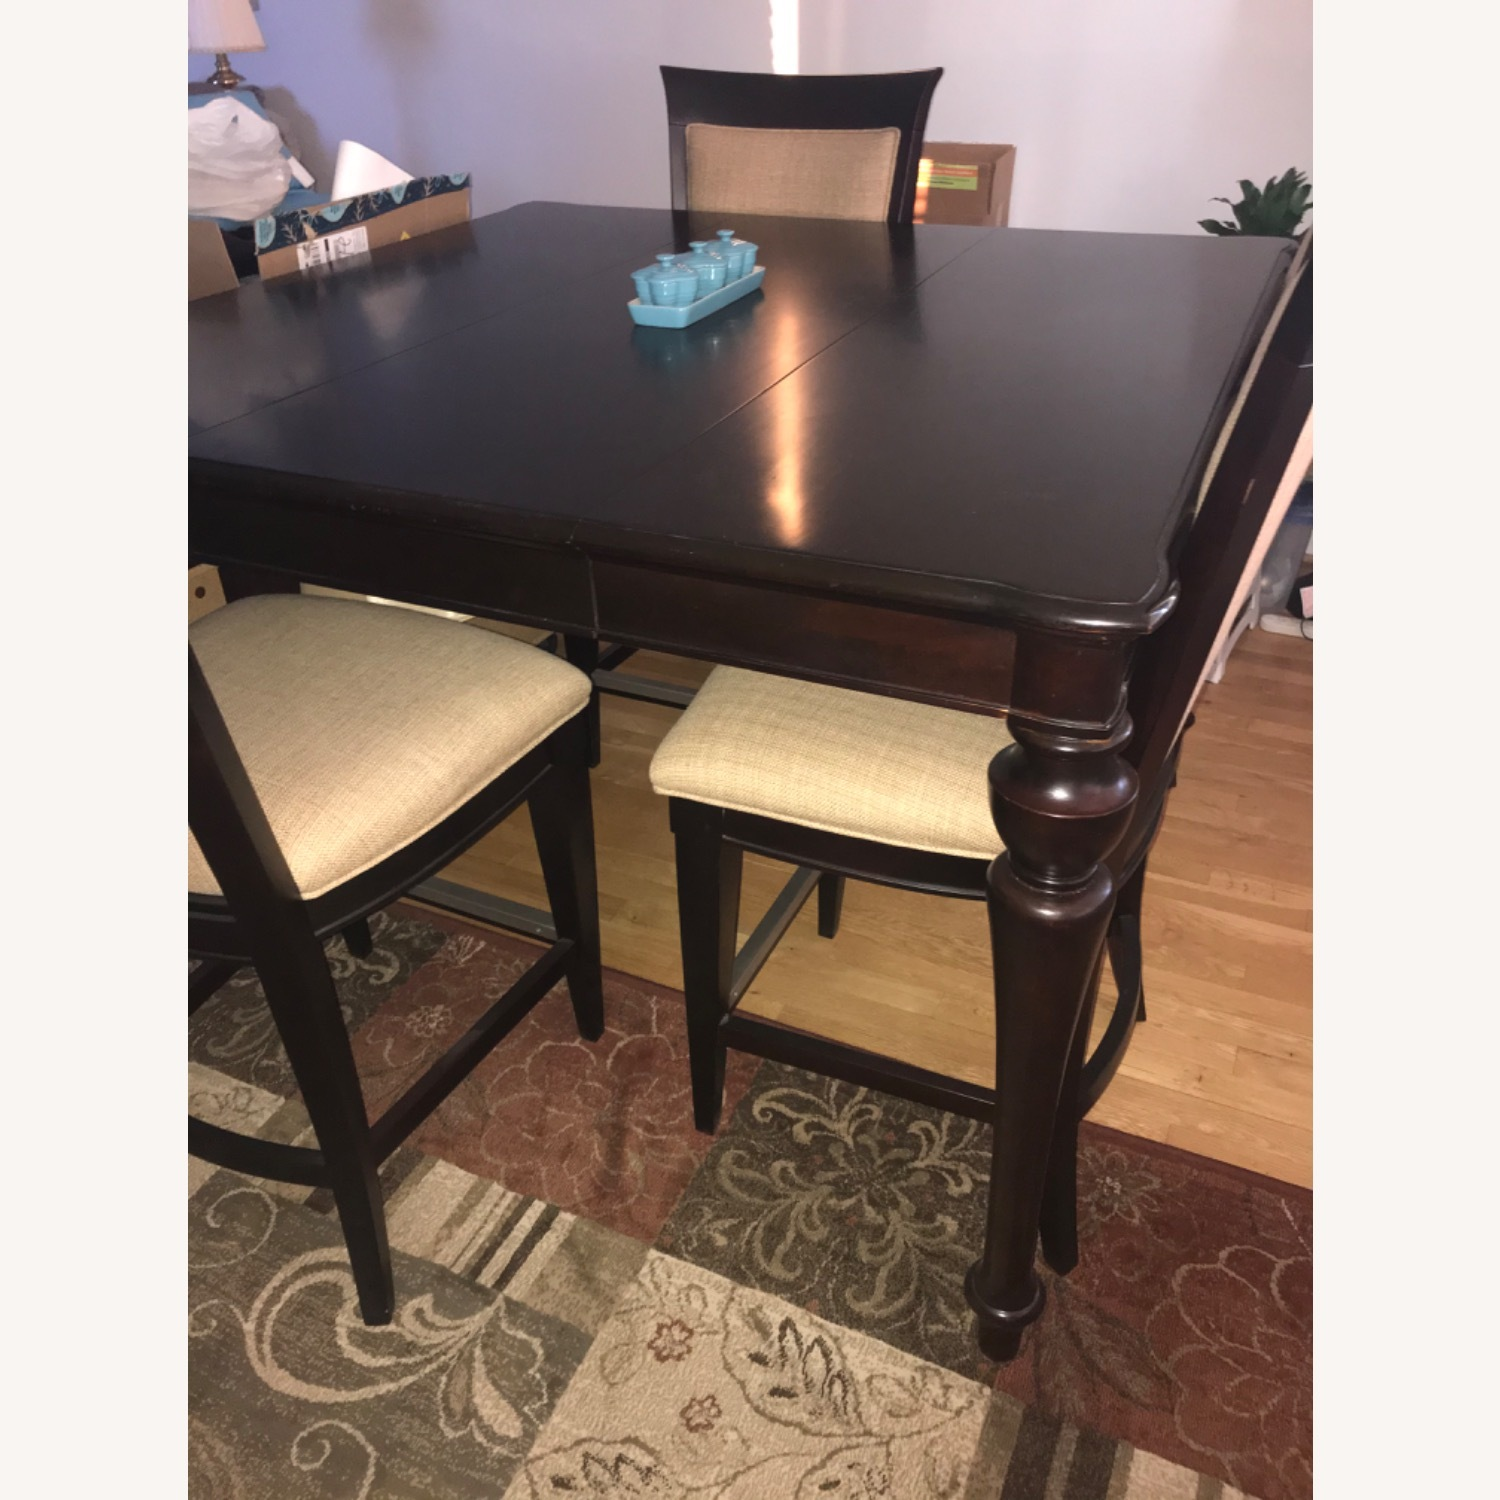 Havertys Copley Square Gathering Dining Table Set with Leaf - image-12